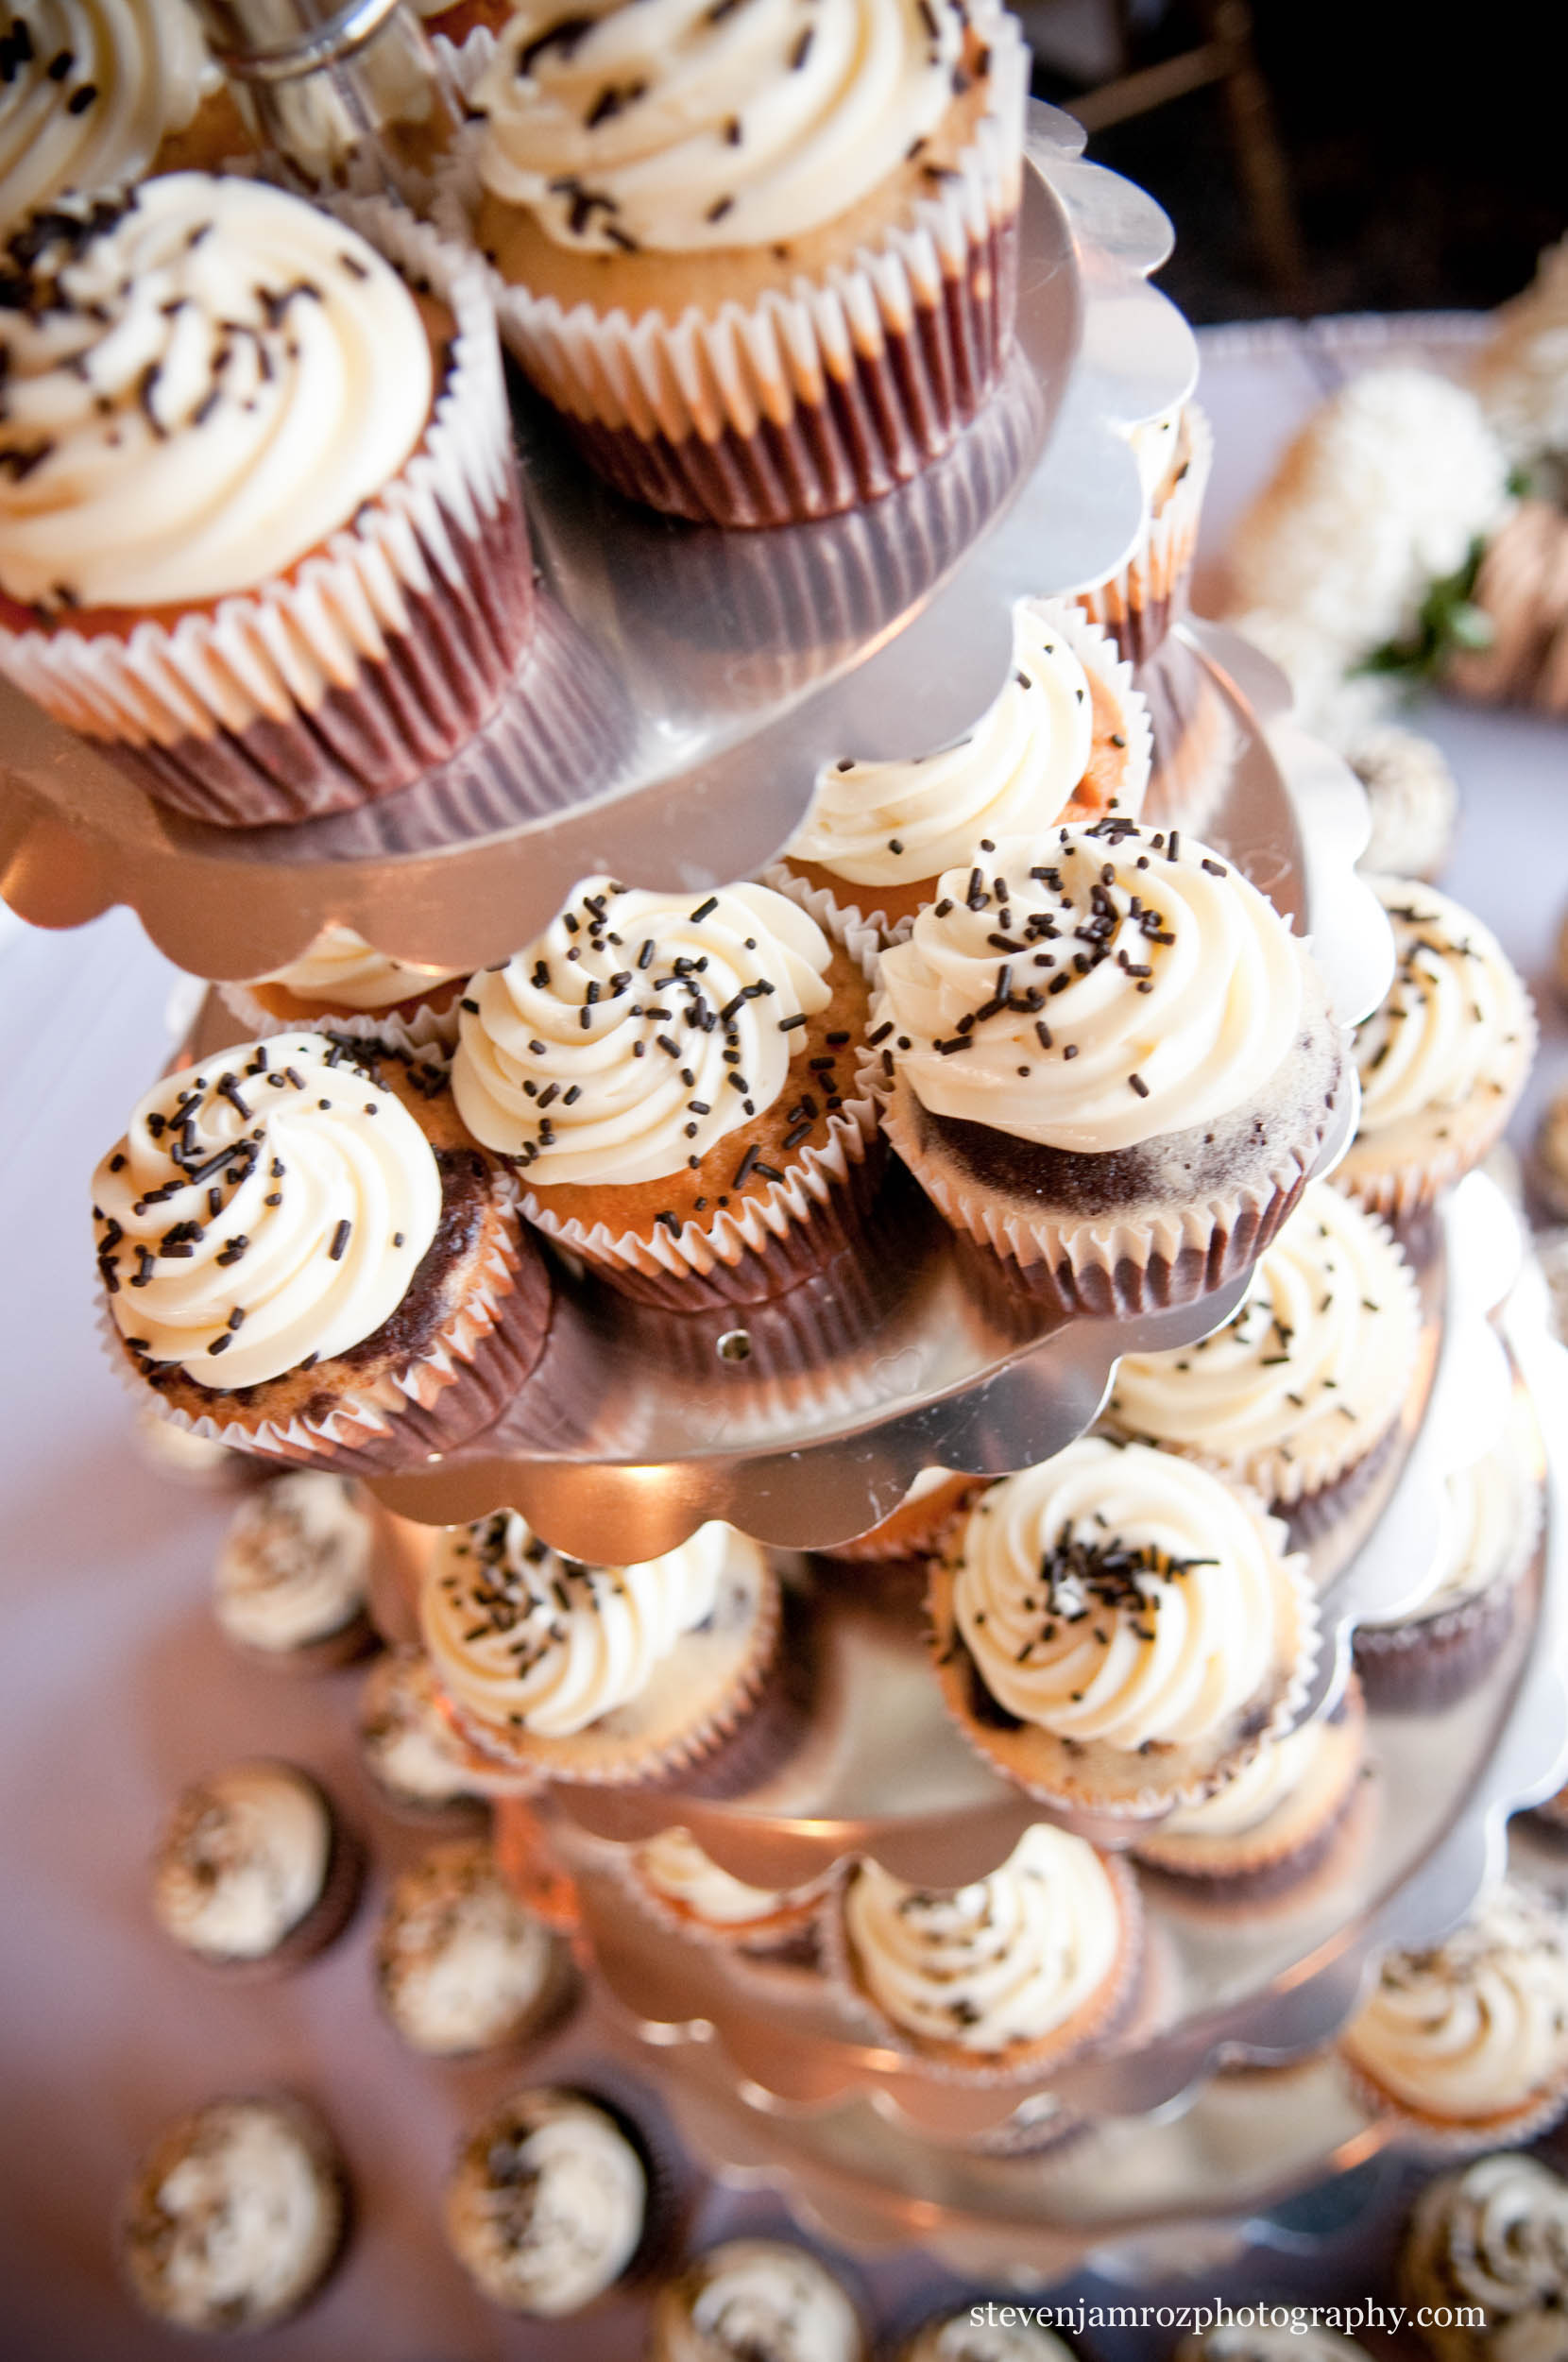 chocolate-cupcakes-wedding-raleigh-steven-jamroz-photography-0263.jpg